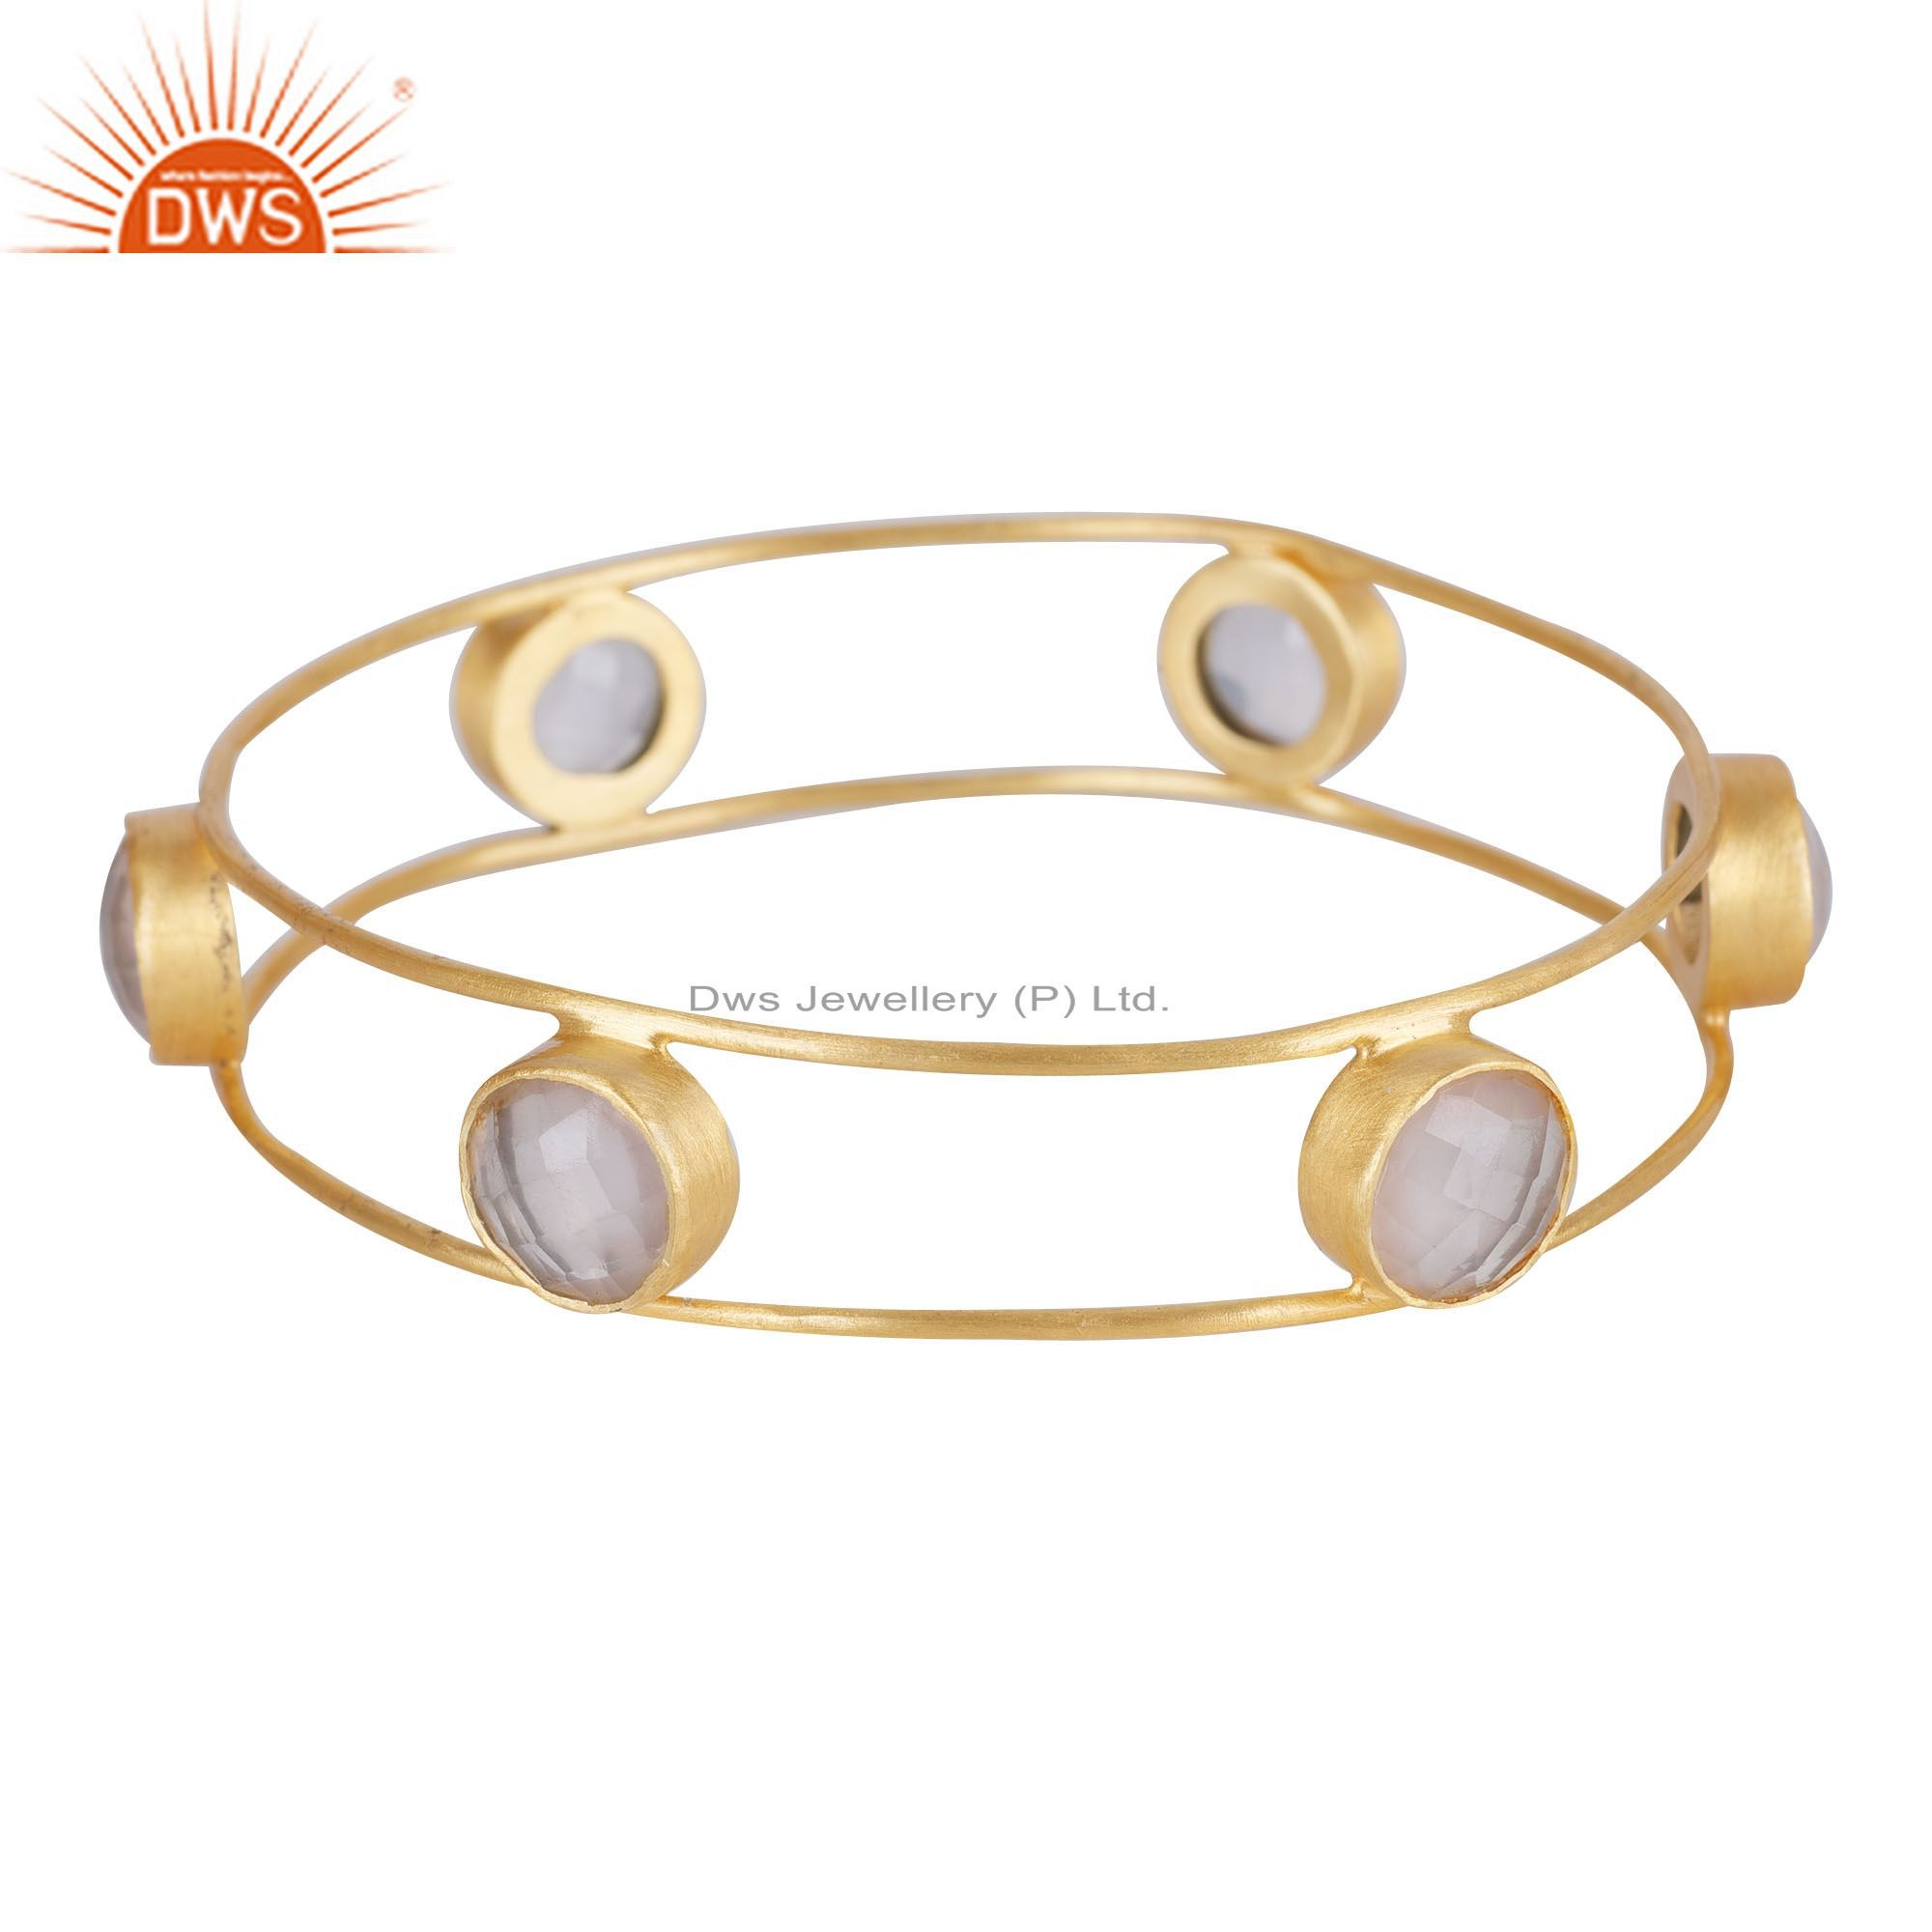 18K Yellow Gold Plated Sterling Silver Rose Quartz Gemstone Bangle Bracelet